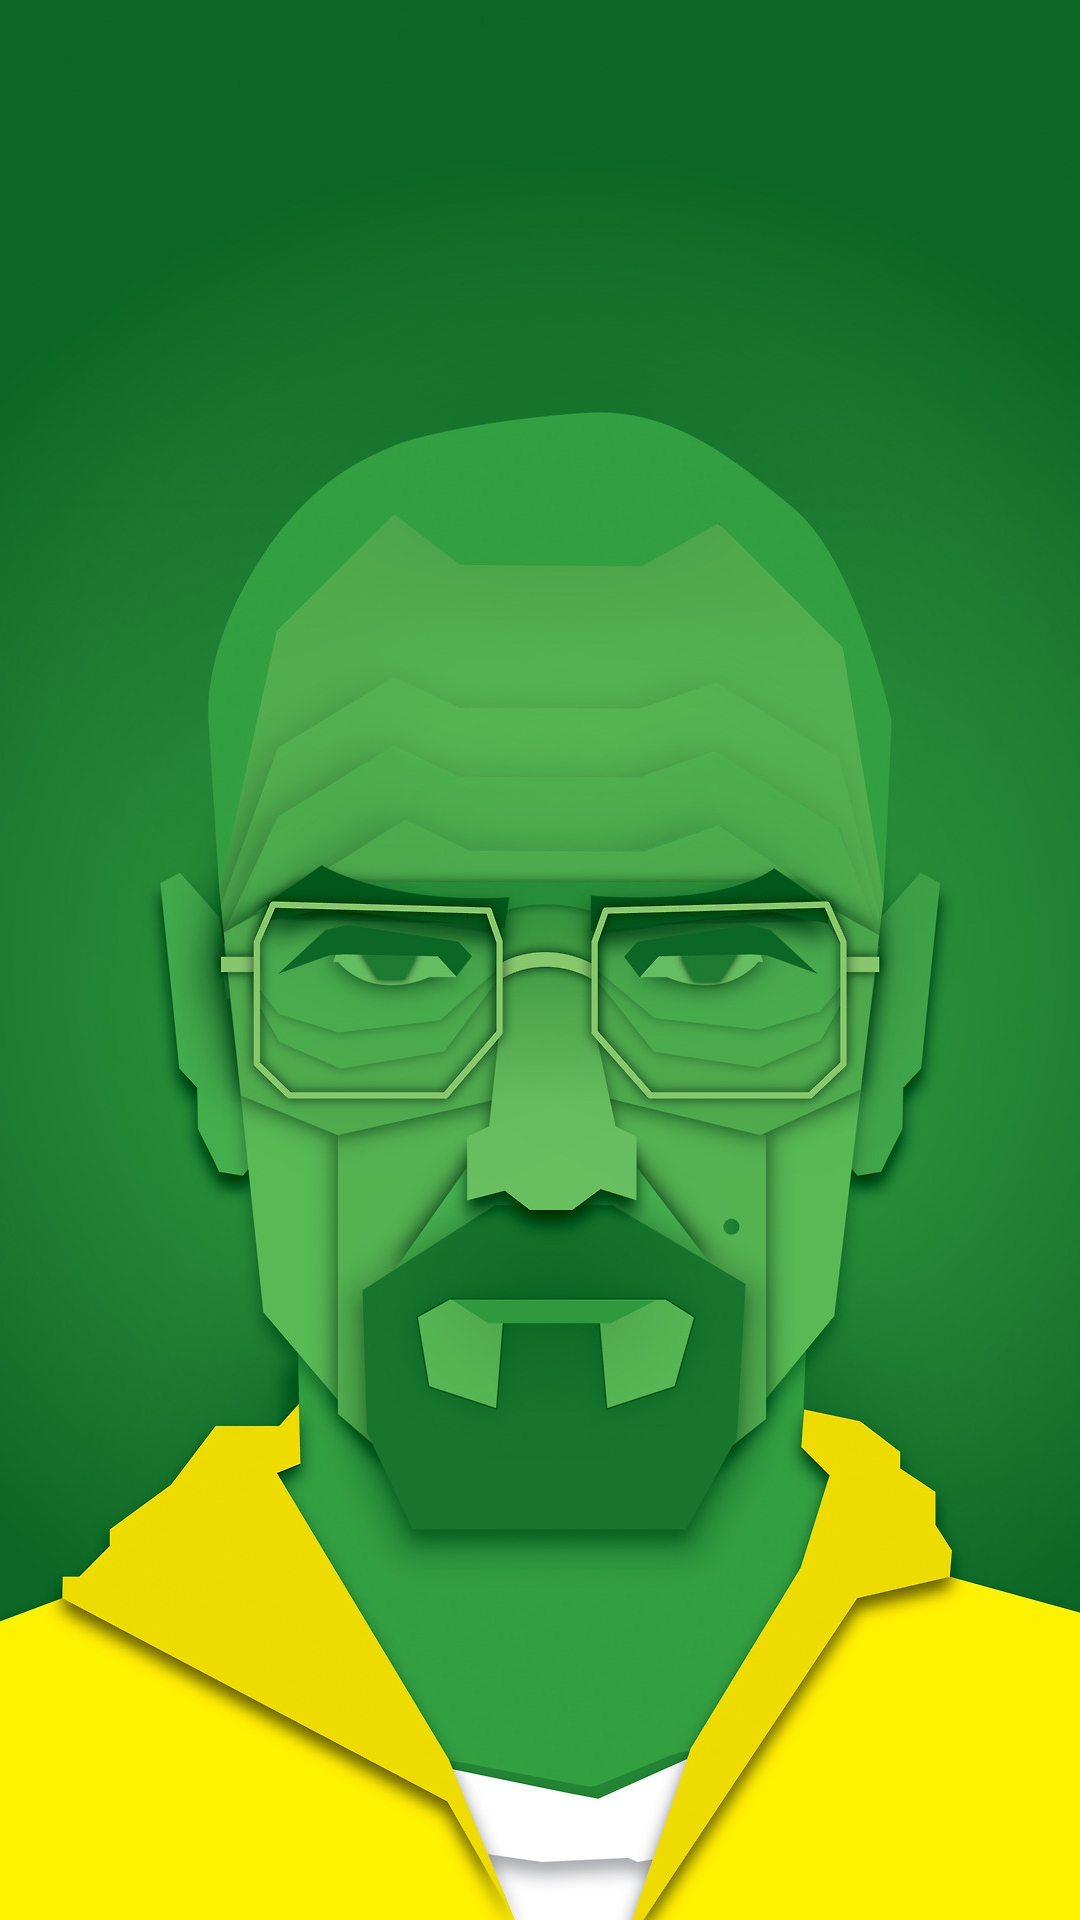 Apple Iphone 5 Wallpapers Hd Free Download Breaking Bad Walter White Cartoon Wallpaper For Iphone X